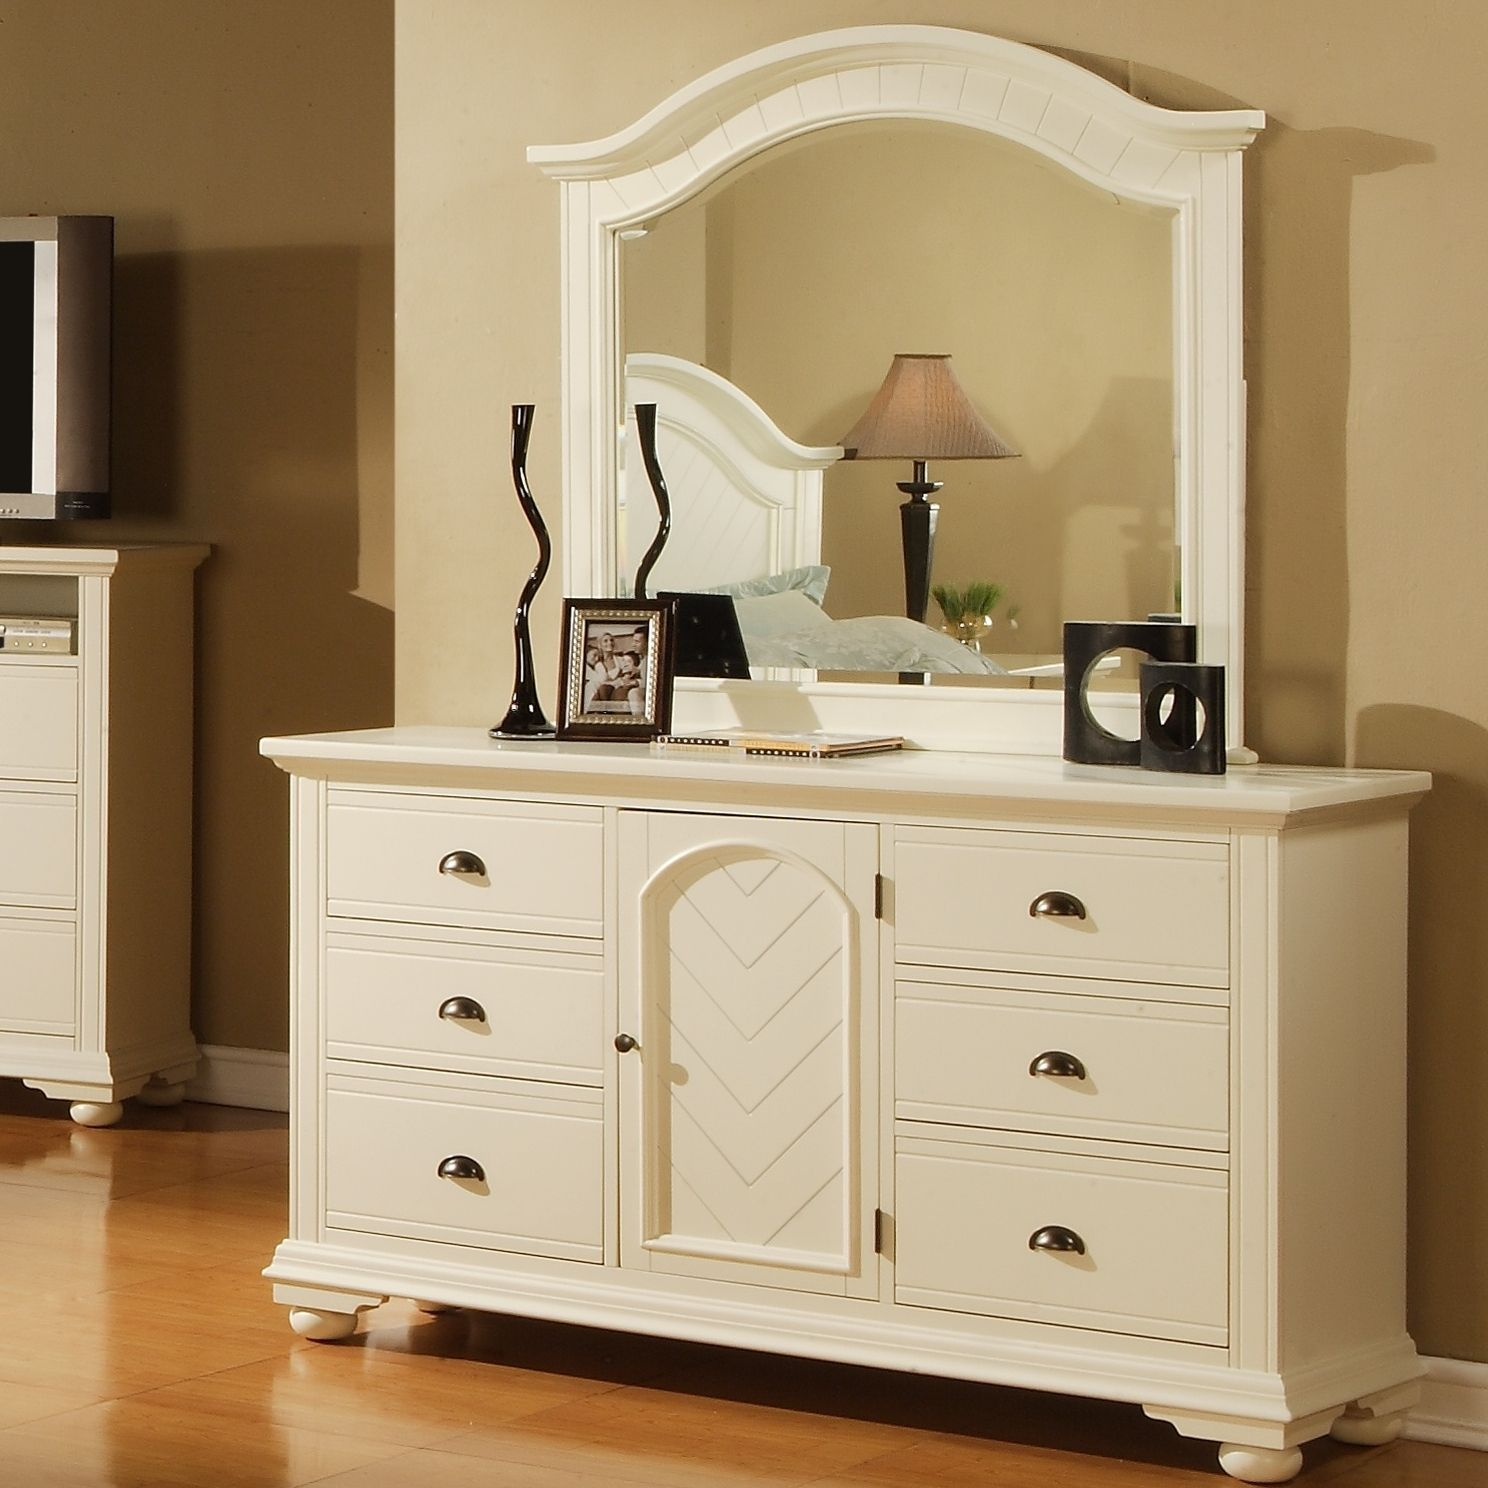 Dressing table with mirror white wooden dressing table mirror  interiors  pinterest